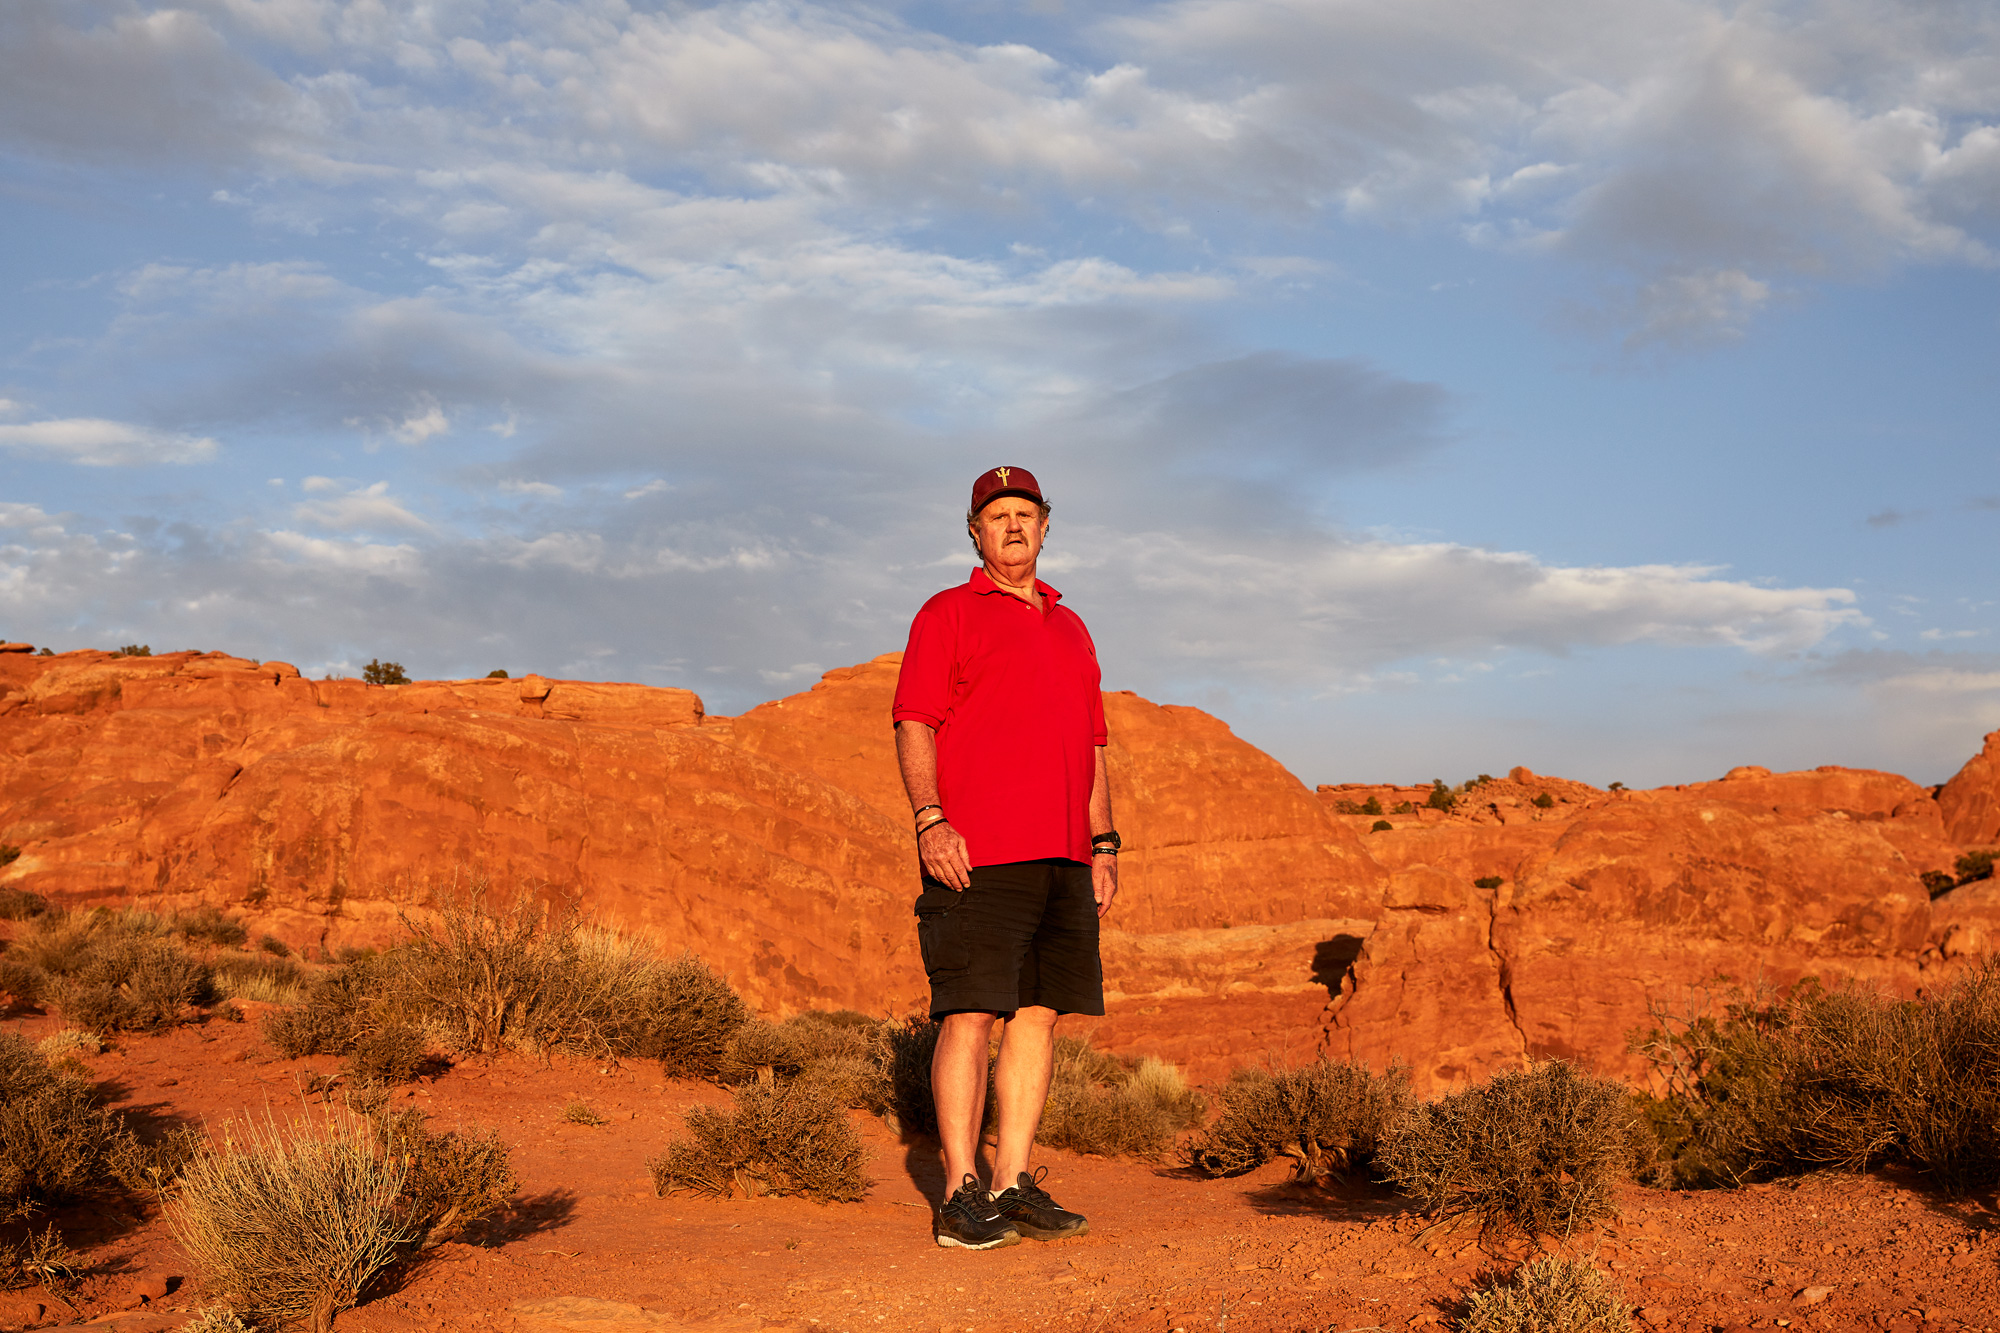 Dad Hits The Road - Arches National Park, UT  - Stephen Denton Photography - Phoenix AZ Commercial Photographer